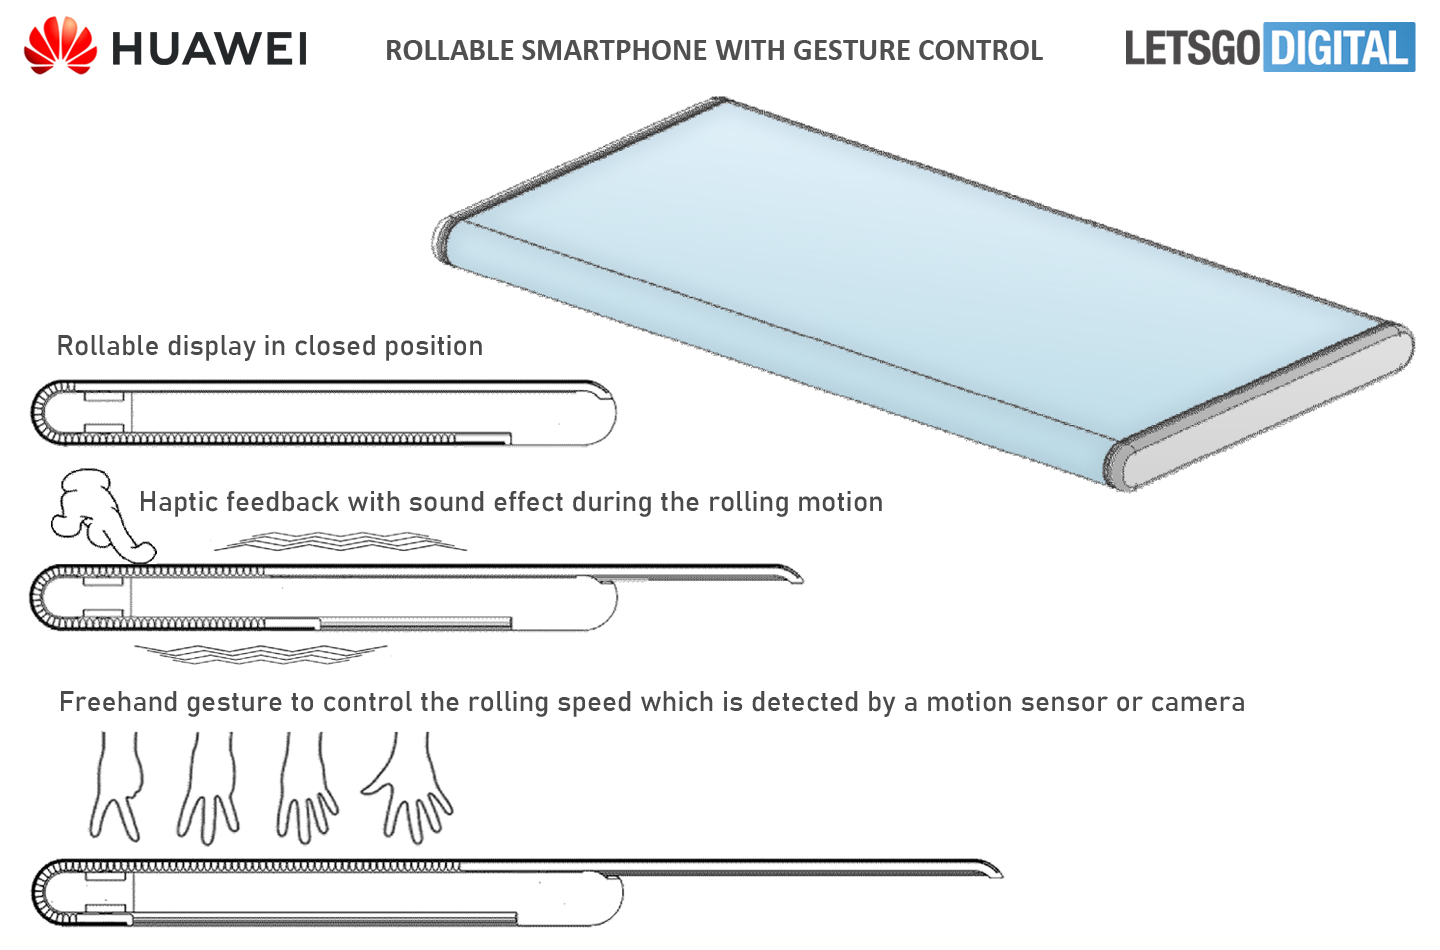 Rollable smartphone freehand gesture control